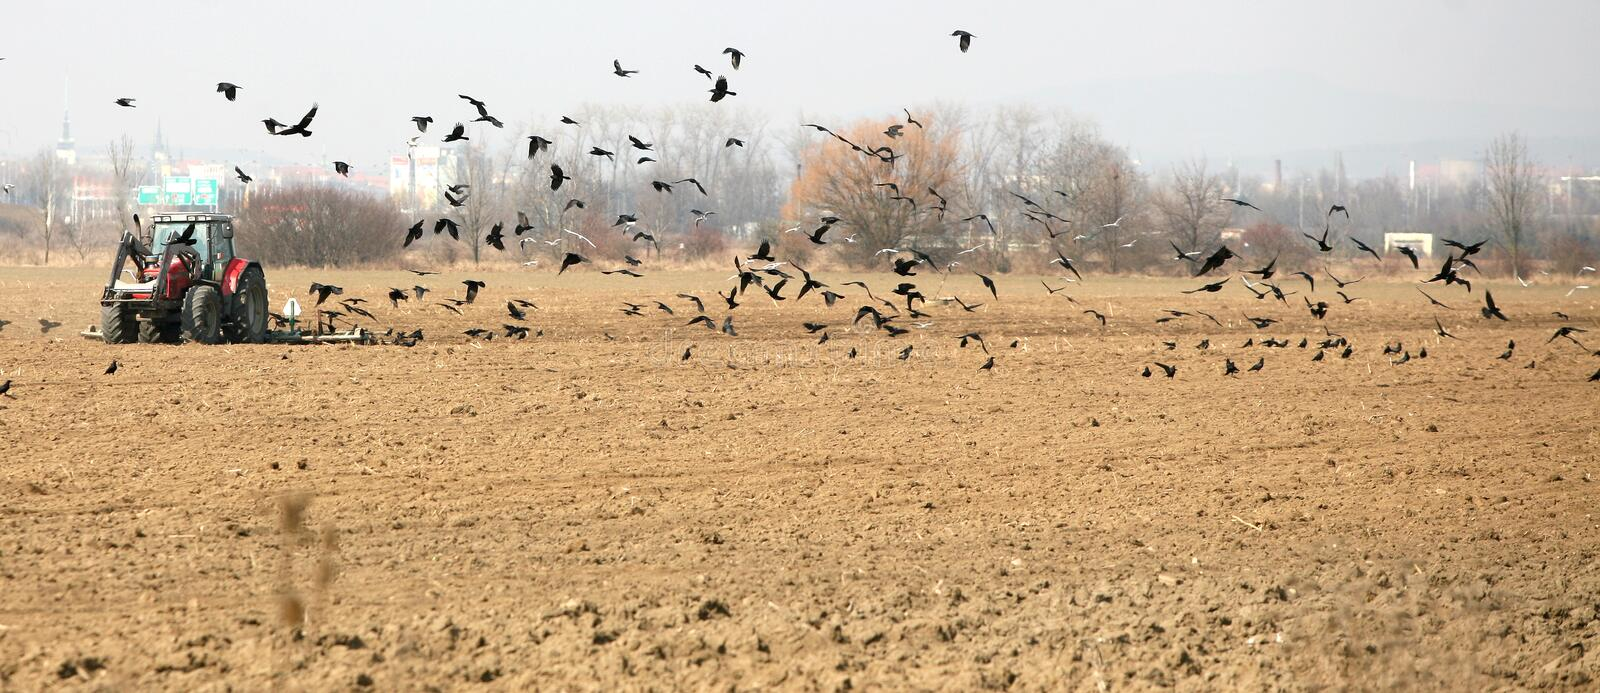 Download Tractor Sown In The Field With Ravens Stock Photo - Image: 18777150